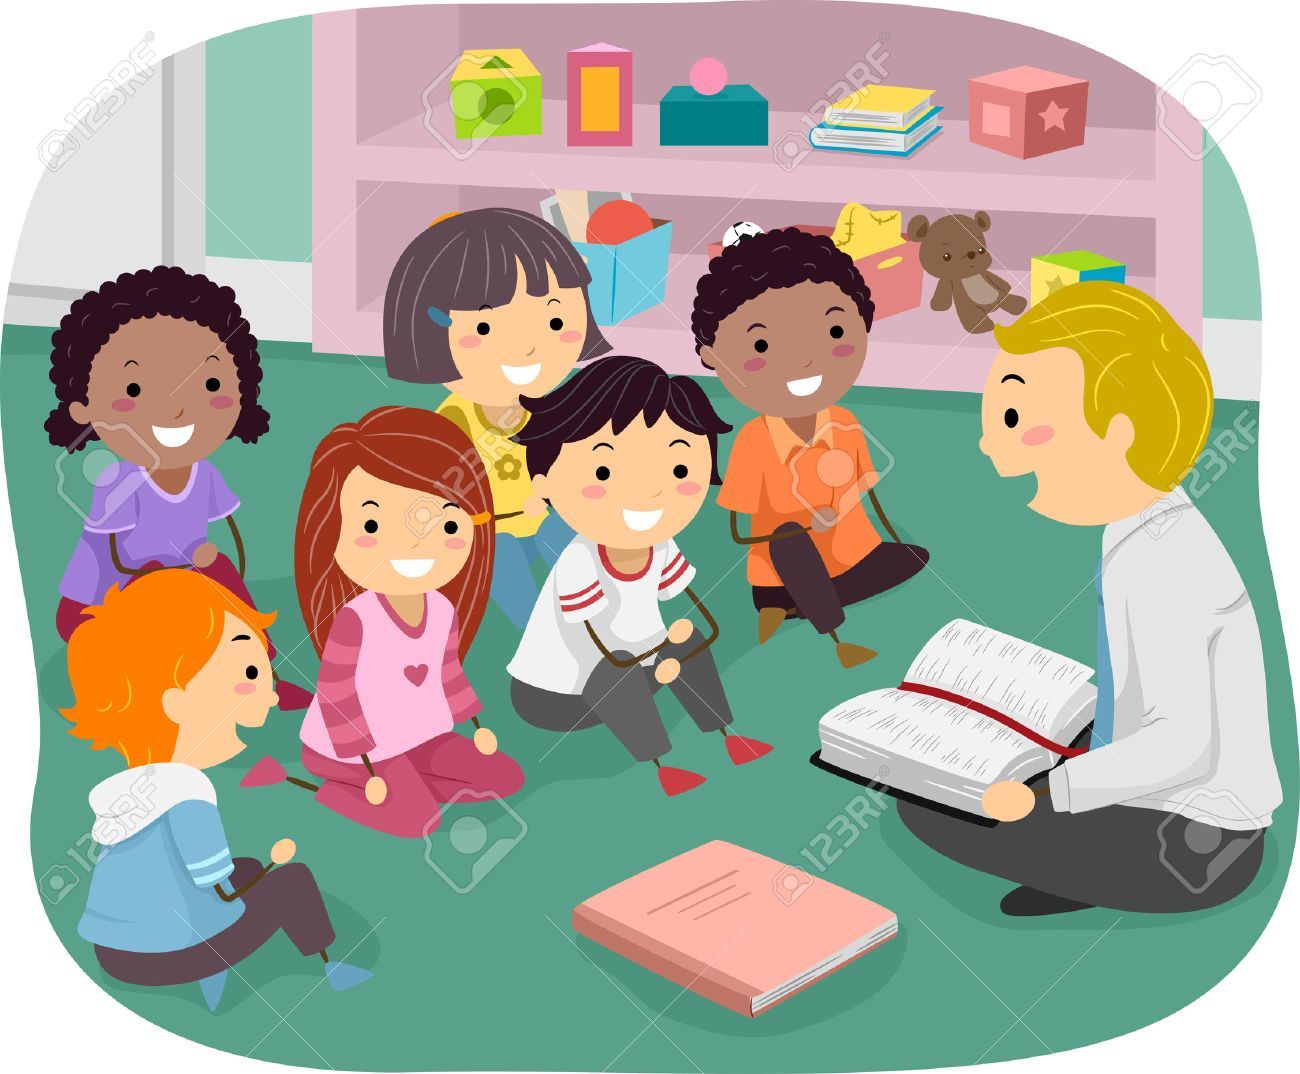 Stock illustration vbs bible. Class clipart school photography